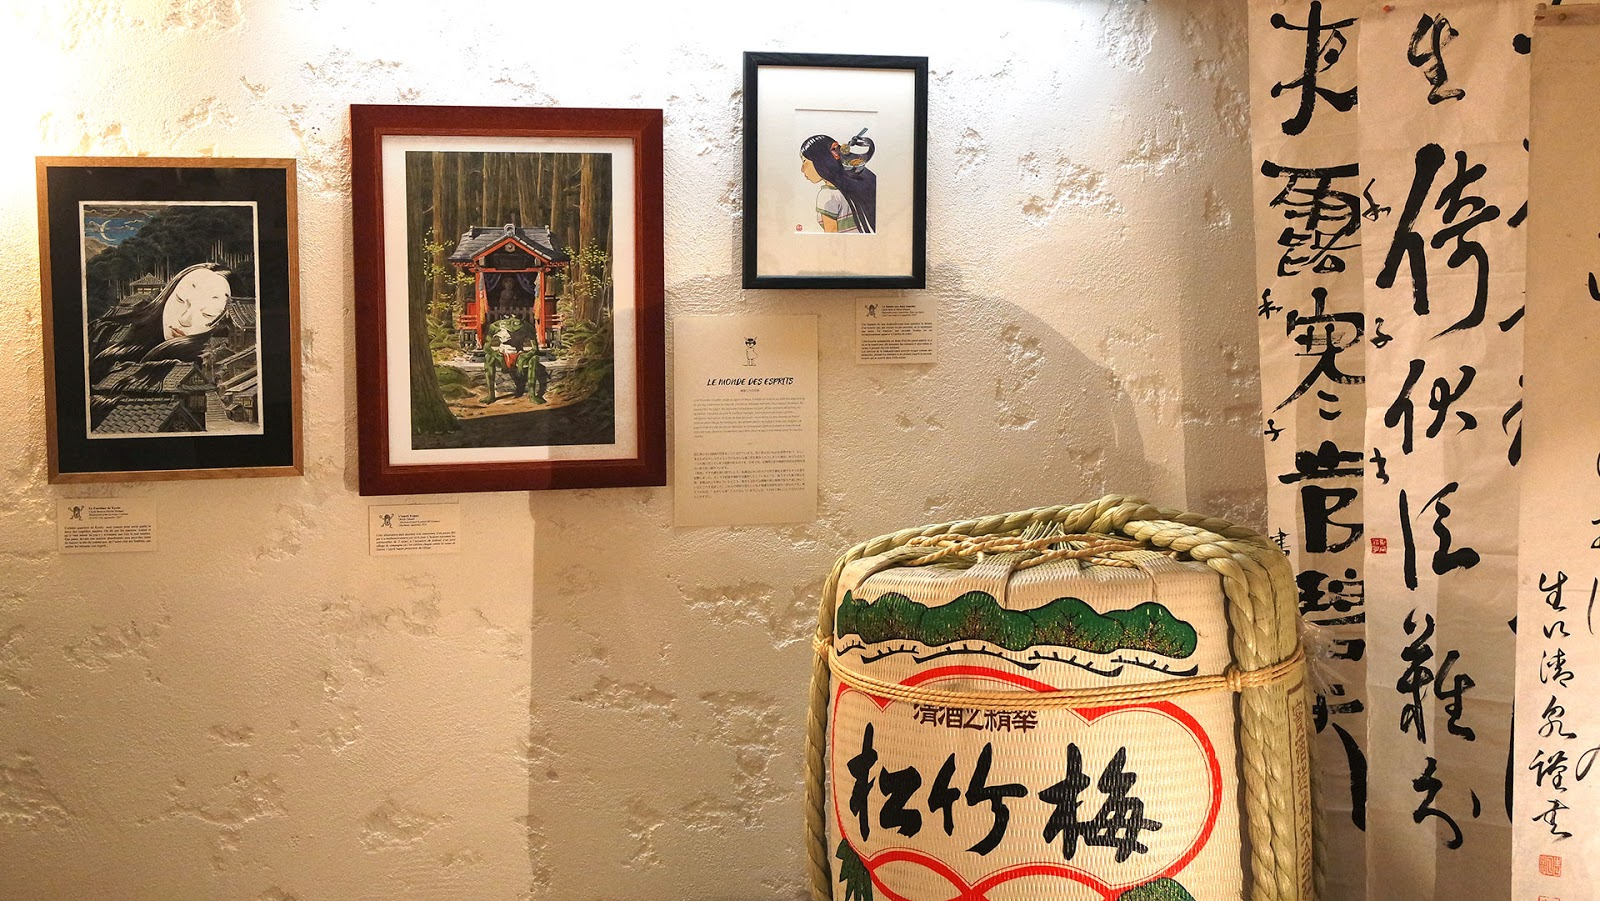 exhibition of watercolor illustrations